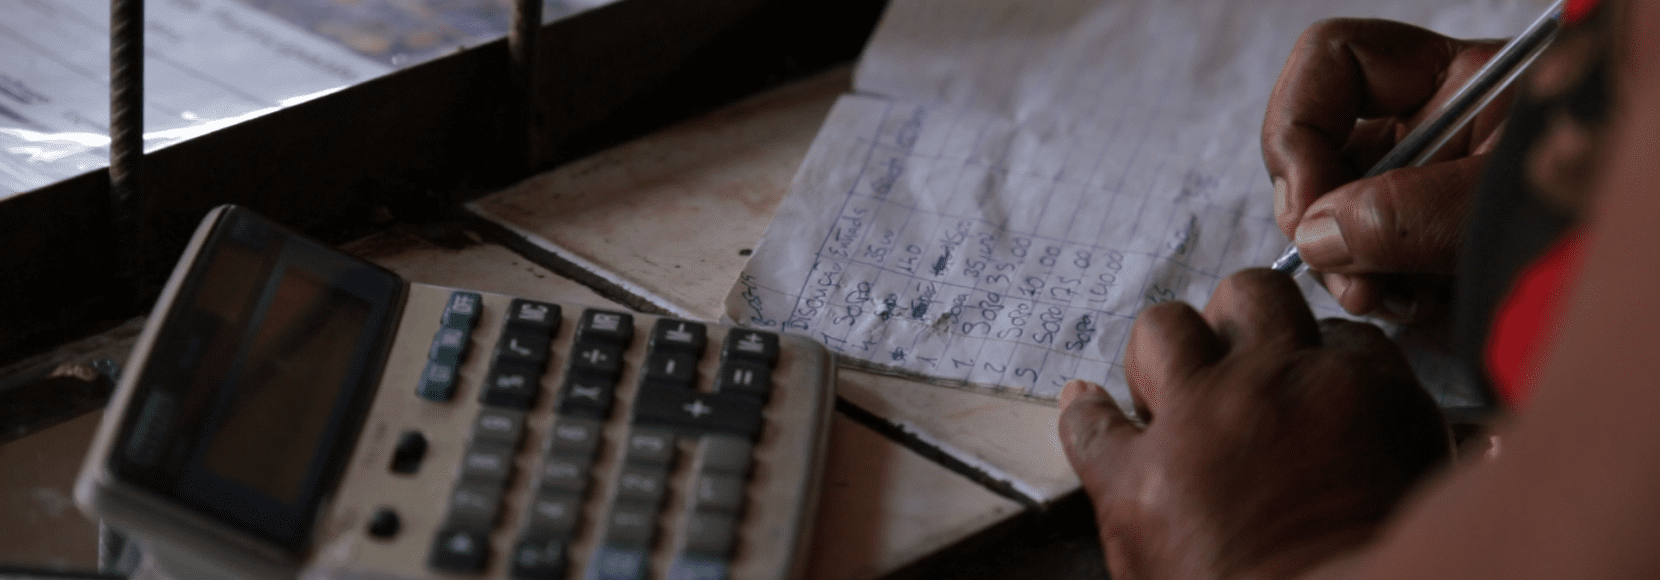 Person calculating business expenses